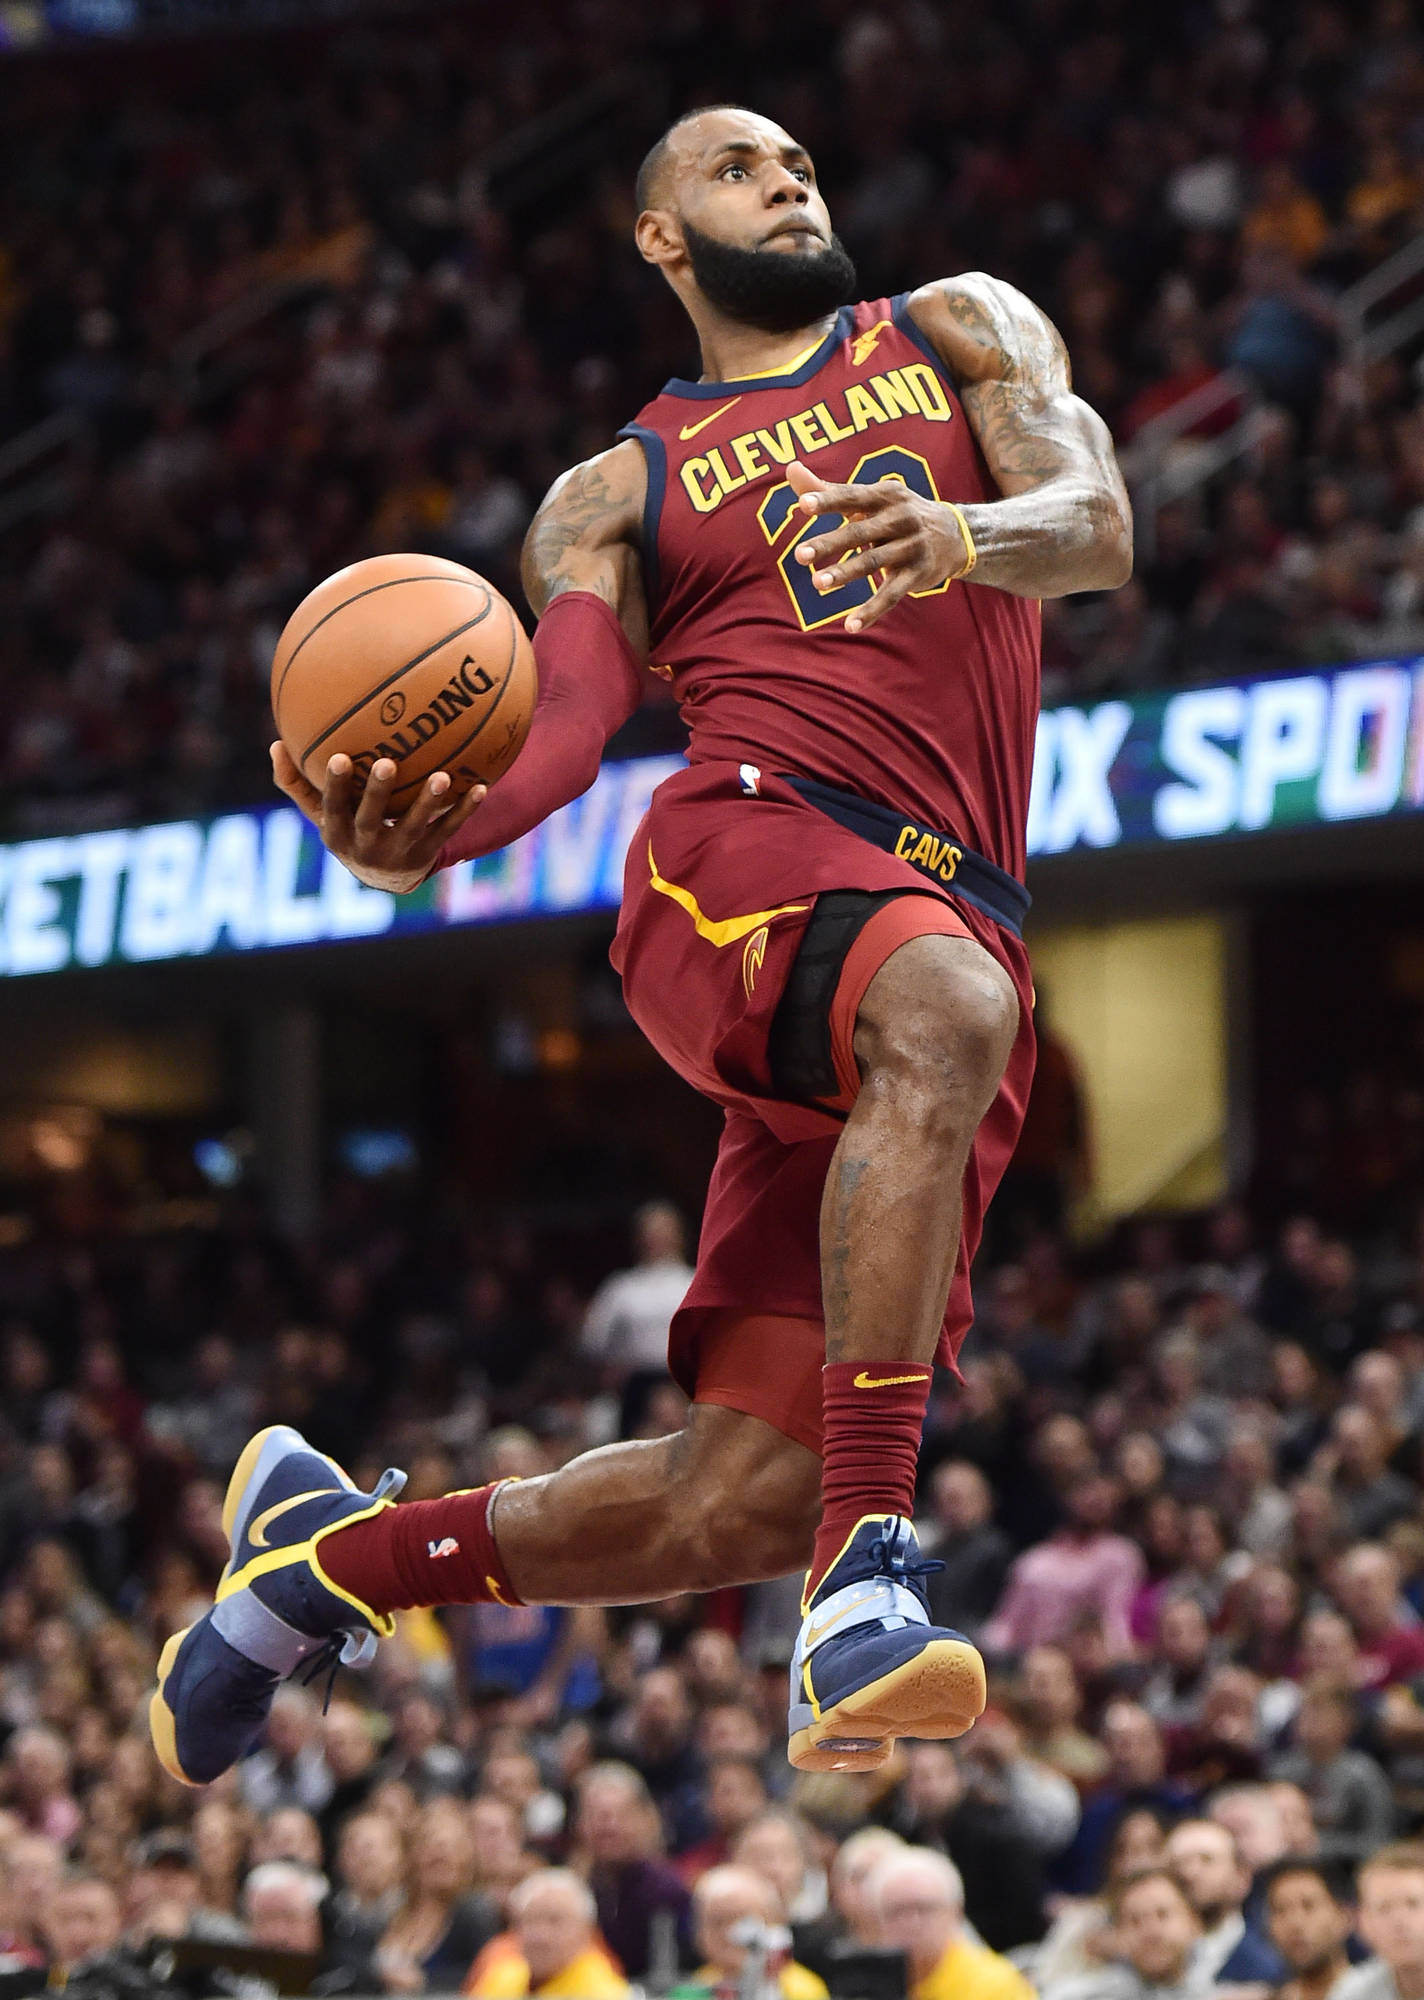 WATCH: LeBron James' showboating attempt on dunk attempt ...